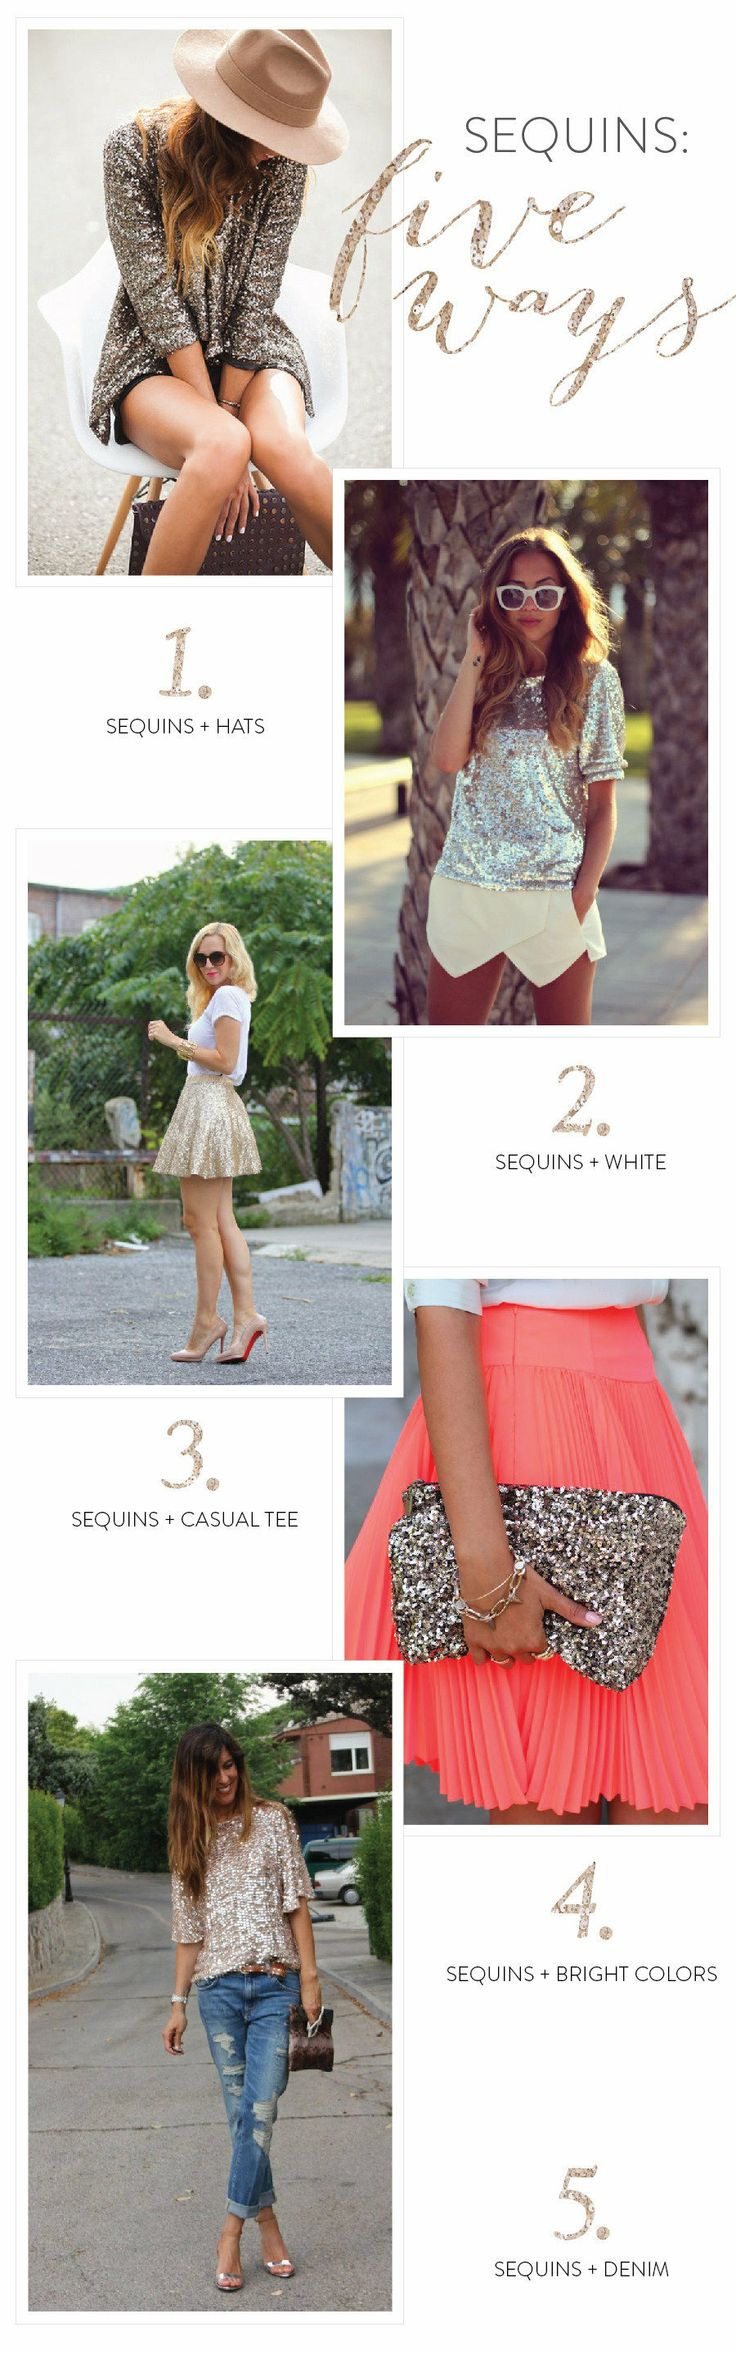 5 Ways to Wear Summer Sequins from The Glitter Guide  Read more - http://www.stylemepretty.com/living/2013/08/15/5-ways-to-wear-summer-sequins-from-the-glitter-guide/